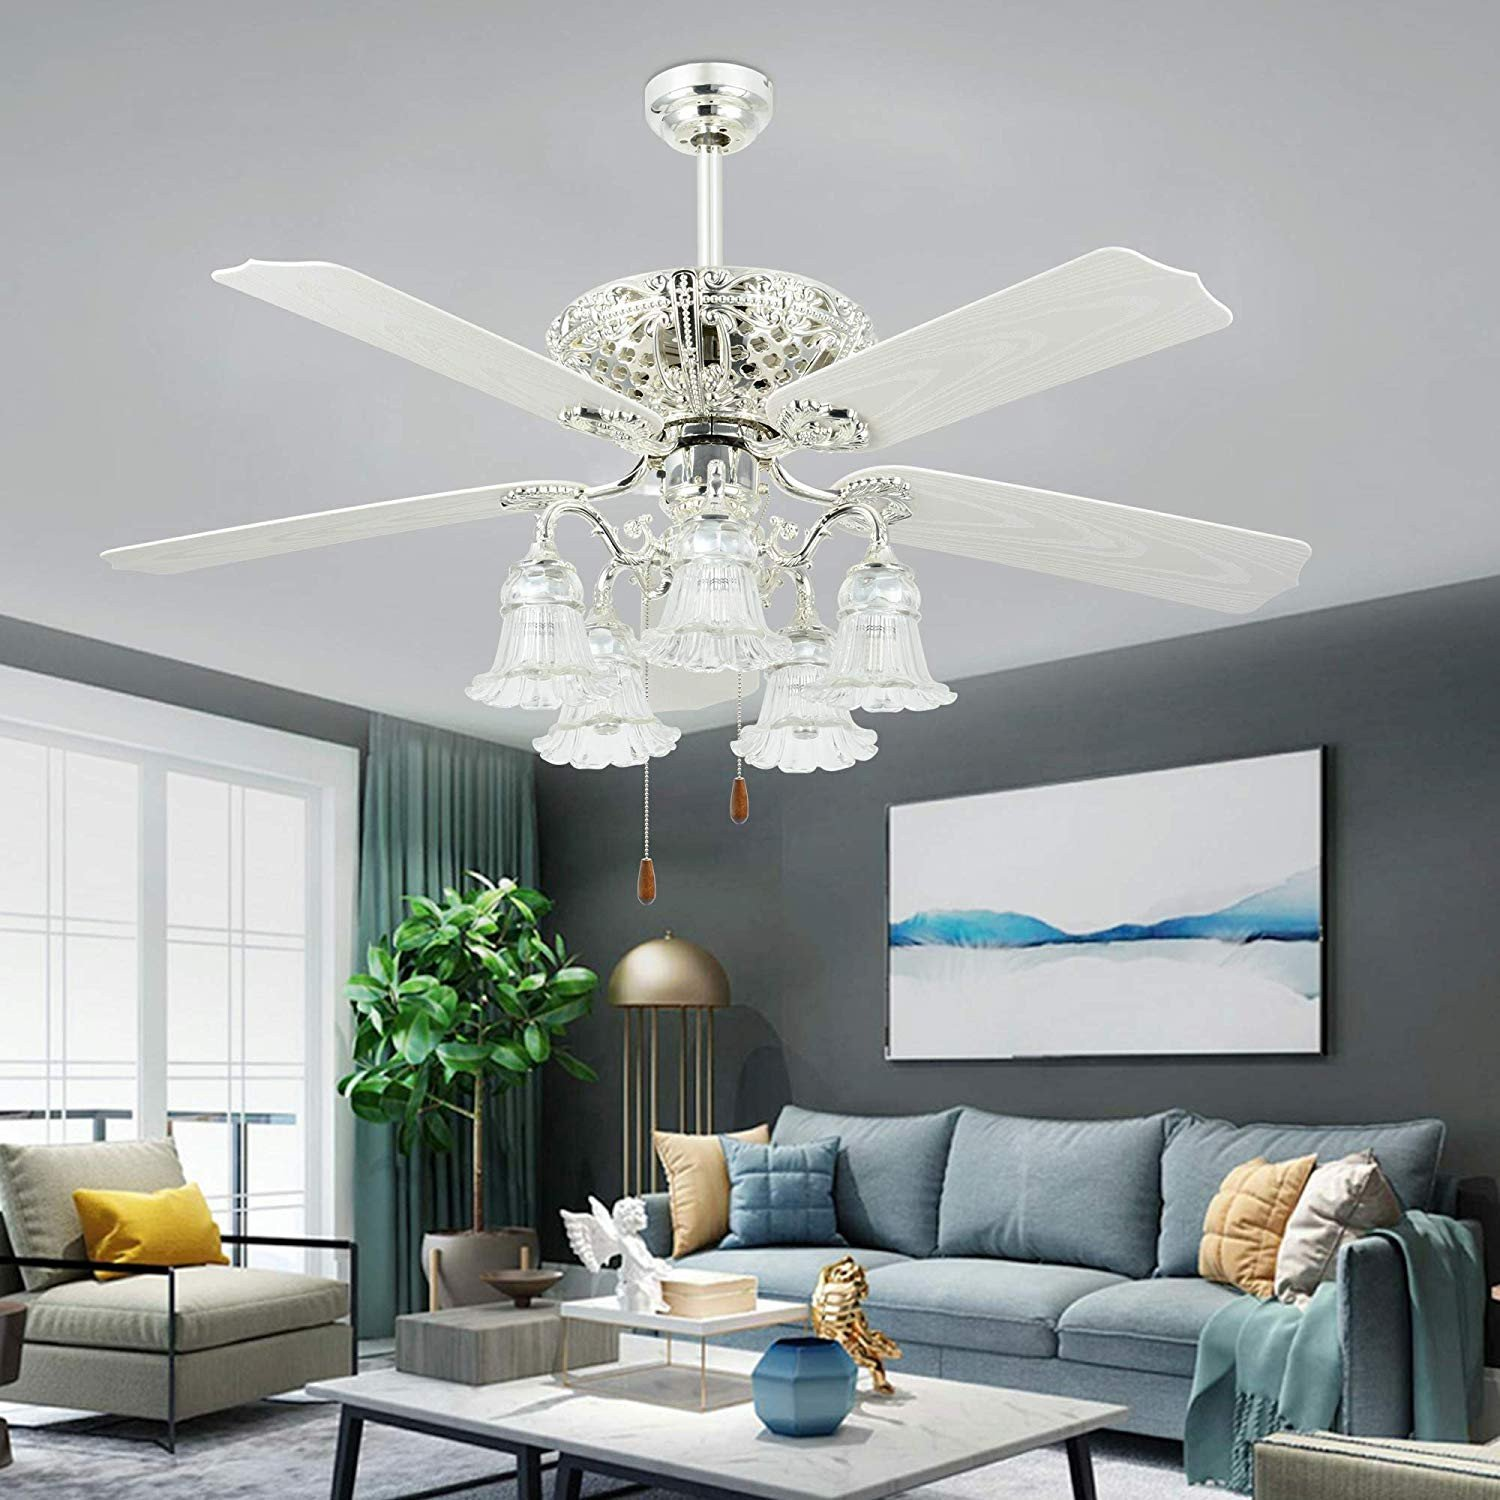 Ceiling Fans for Girl Bedroom Inspirational White Ceiling Fan with Remote Control 5 Glass Light Cover Indoor Home Decoration Living Room Dinner Room Quiet Fans Chandelier 5 Plastic Reversible